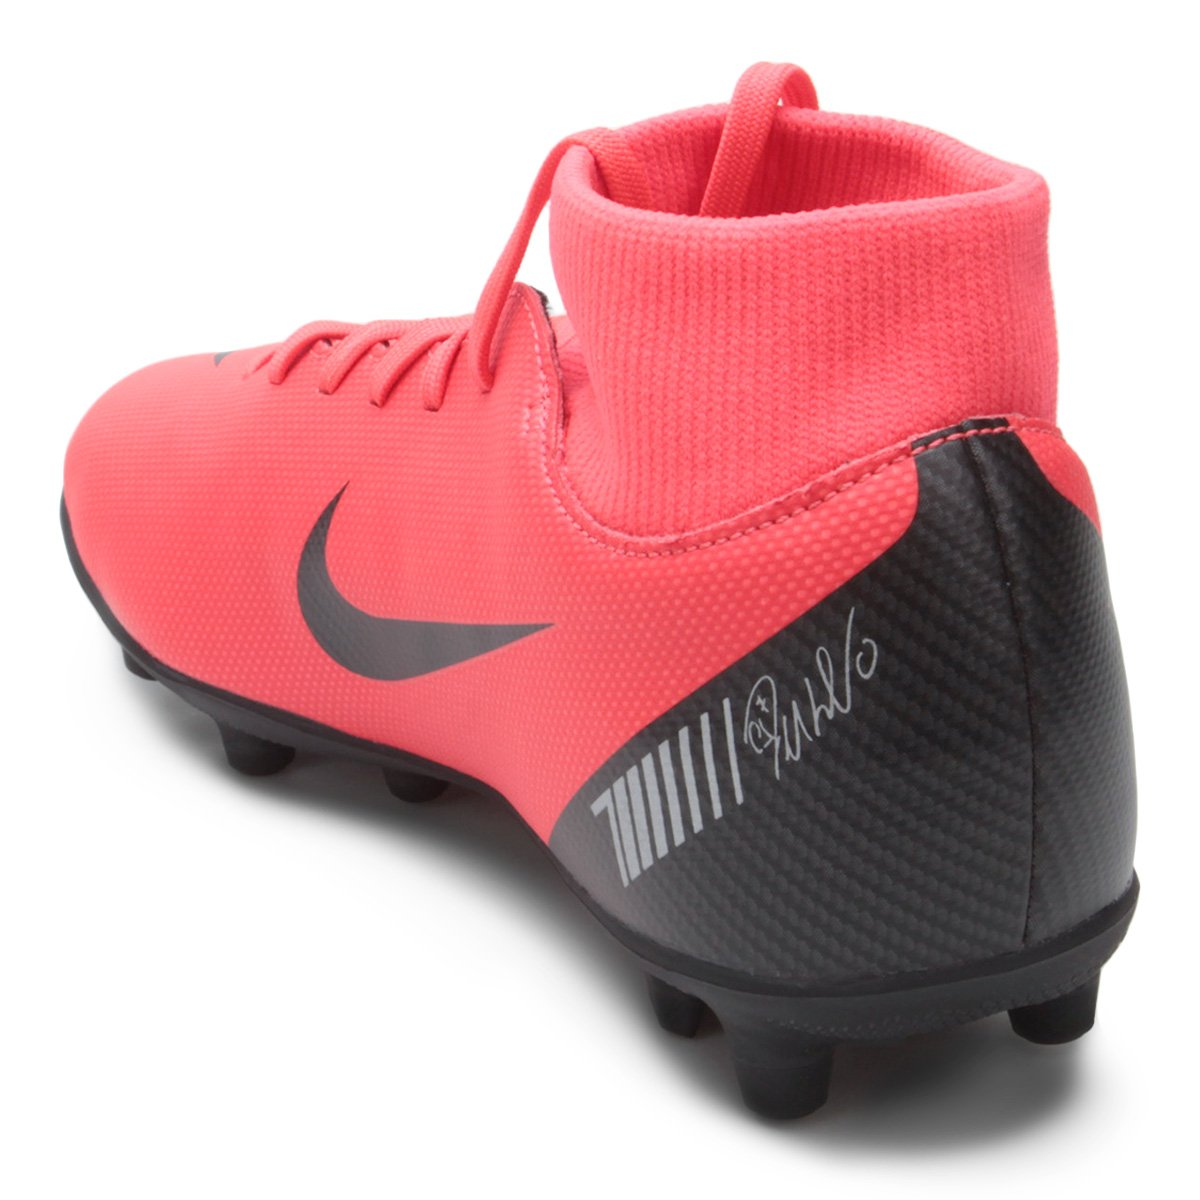 check out d9560 aed14 Chuteira Campo Nike Mercurial Superfly 6 Club CR7 MG